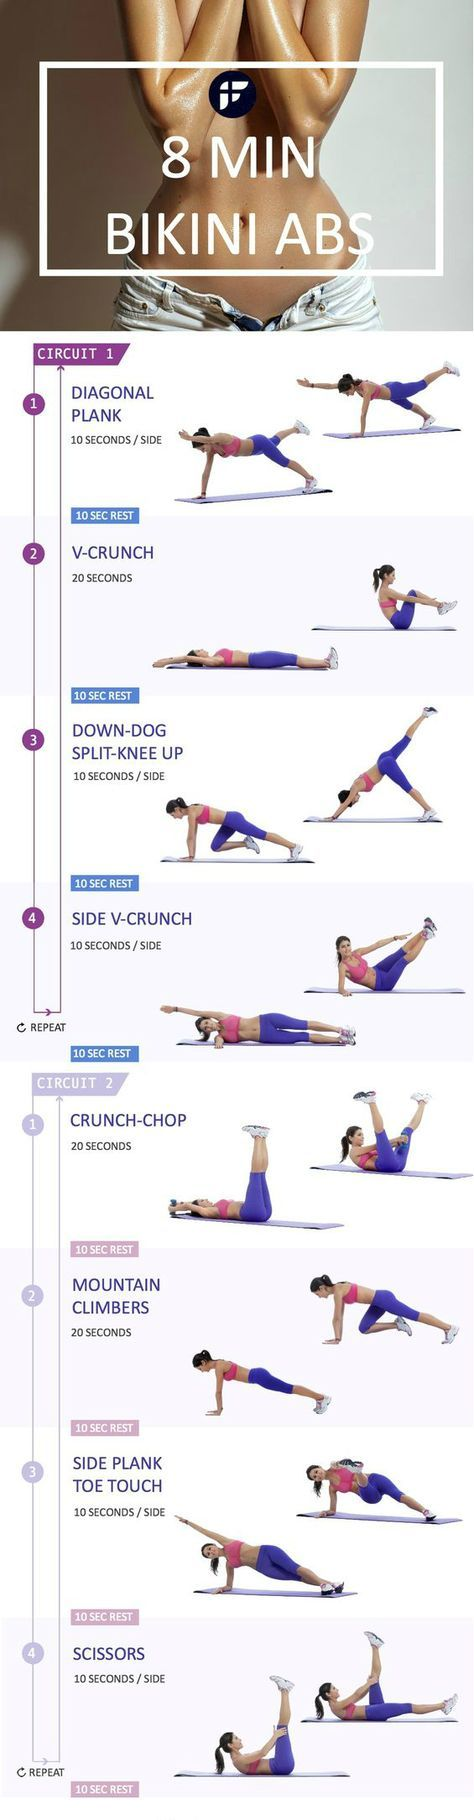 Cinch your entire core and get your tummy slim and tight with this at home bikini abs workout. Complete this sequence once a week and maintain a healthy diet to achieve a firm stomach in no time! Bikini season, here you come #weightloss #loseweight #work